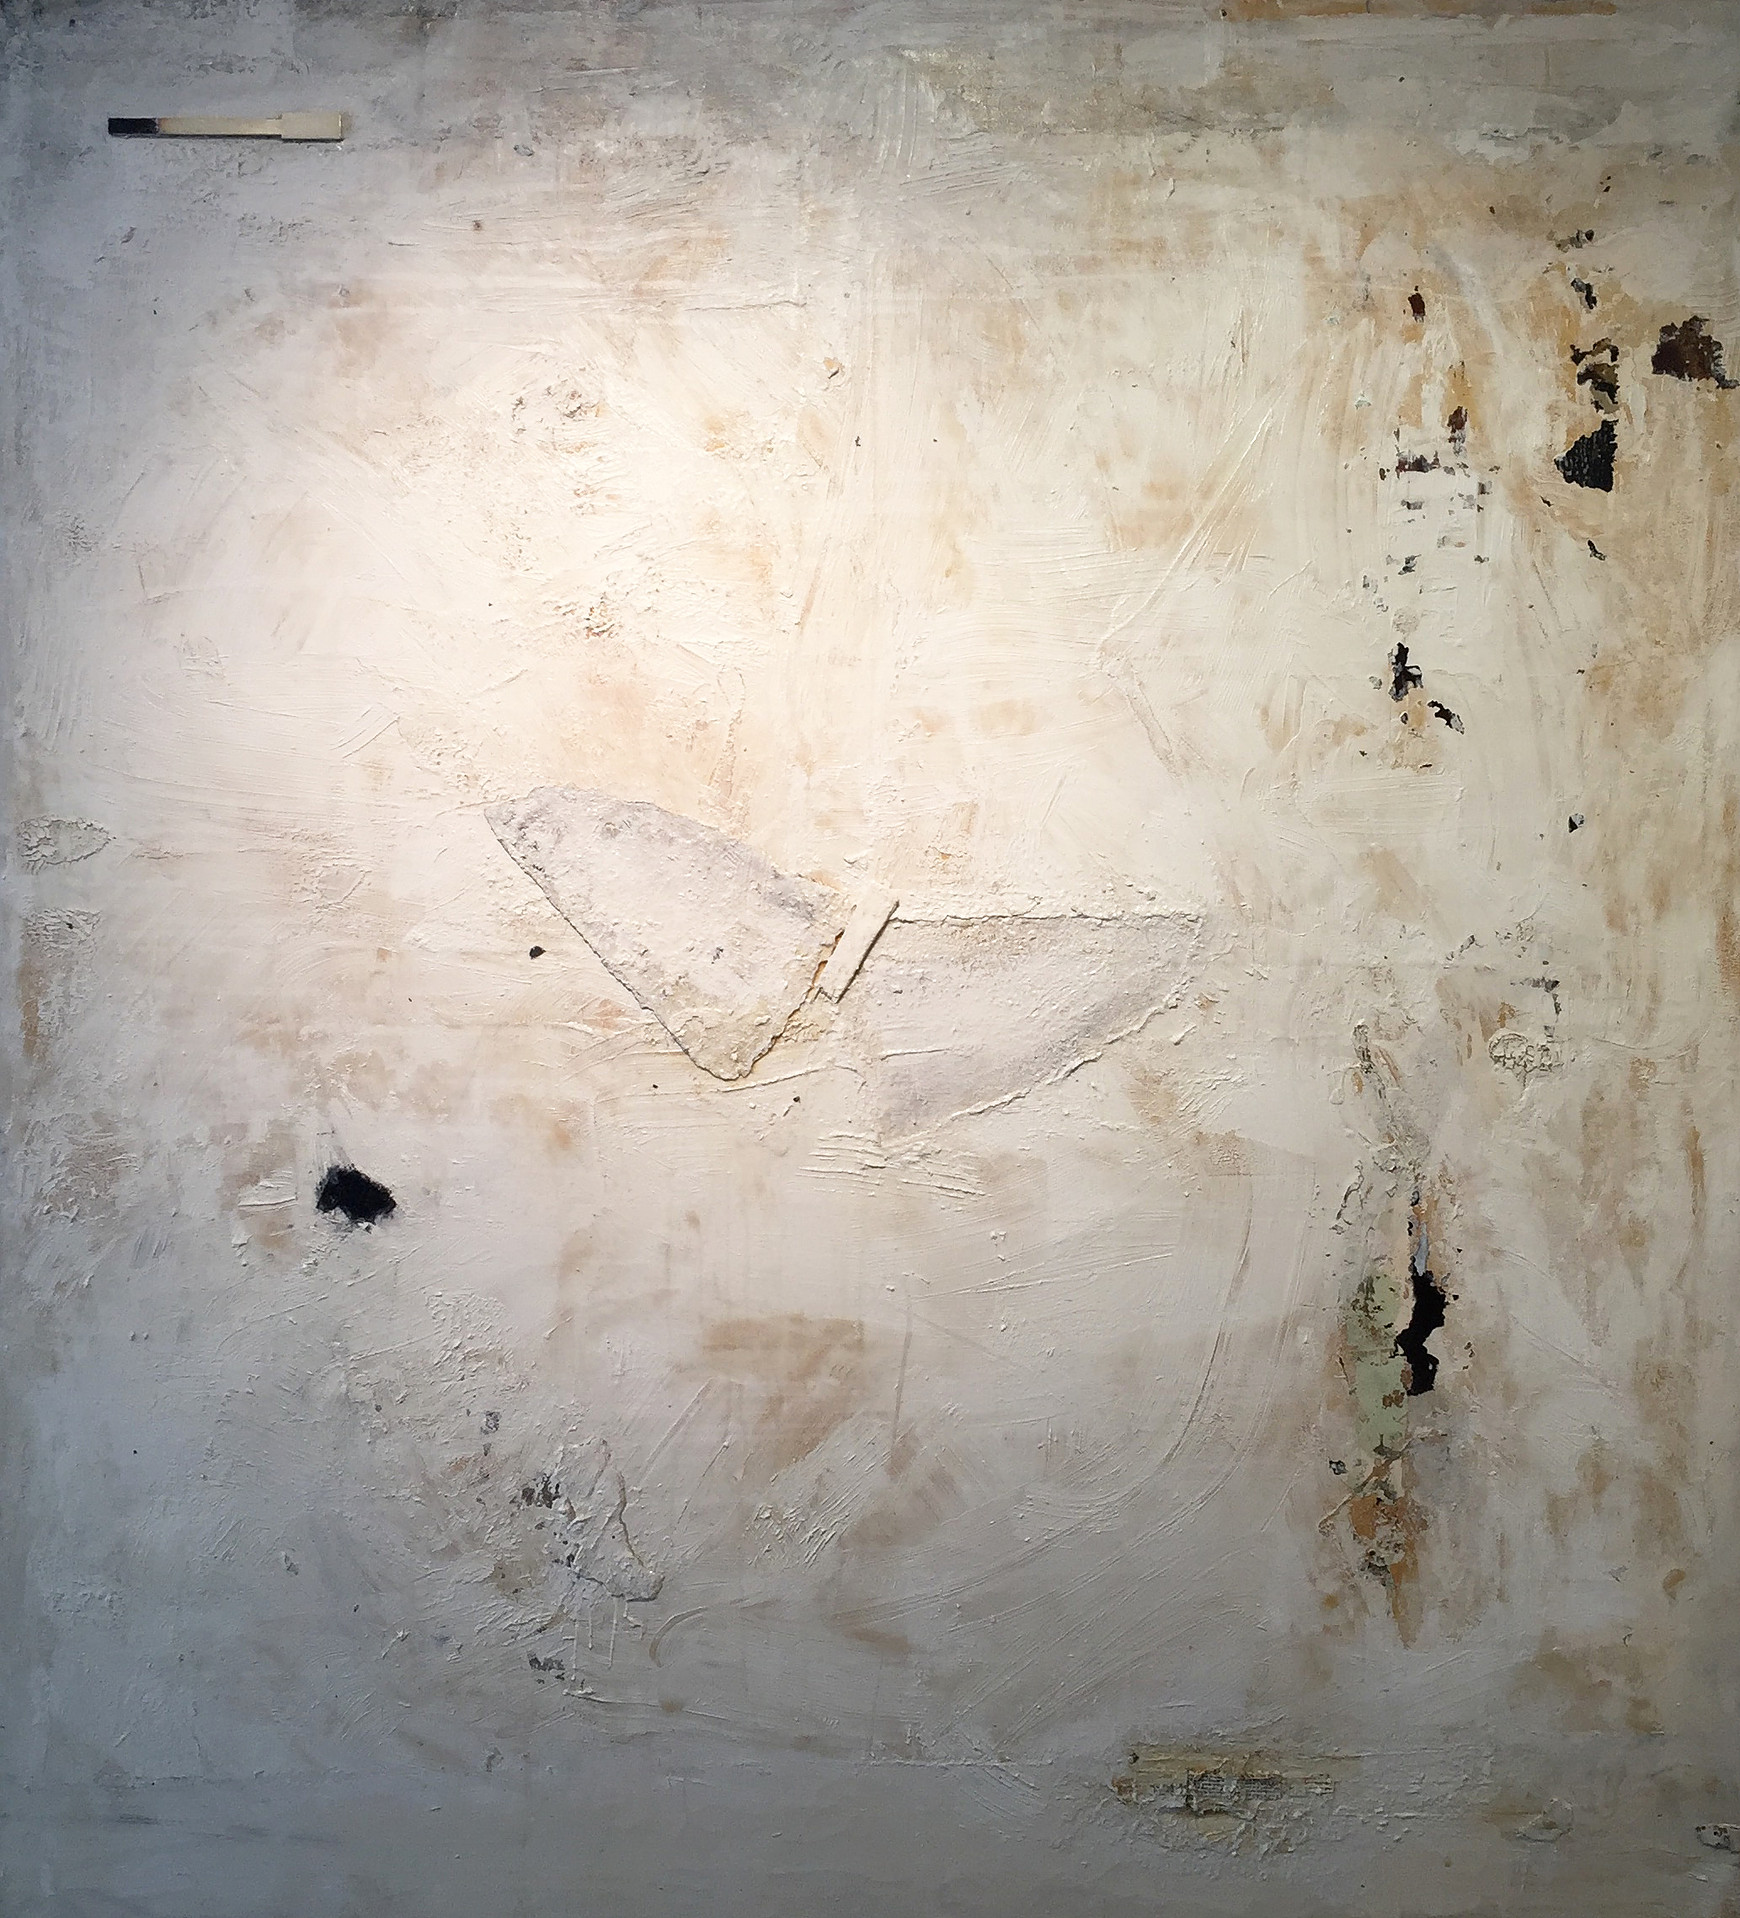 In the form of 2 wings_20216_64x58_Oil paint_recycled canvas parts_glue adhesive & paper.jpg